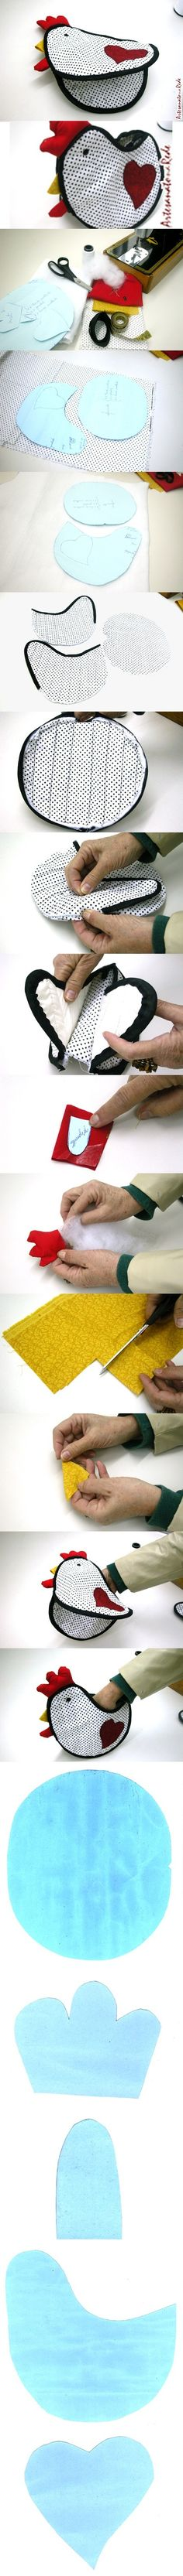 How to make chicken potholders - step by step images. - - - - - - - - - Pegador de Panelas galinha:                                                                                                                                                                                 Más